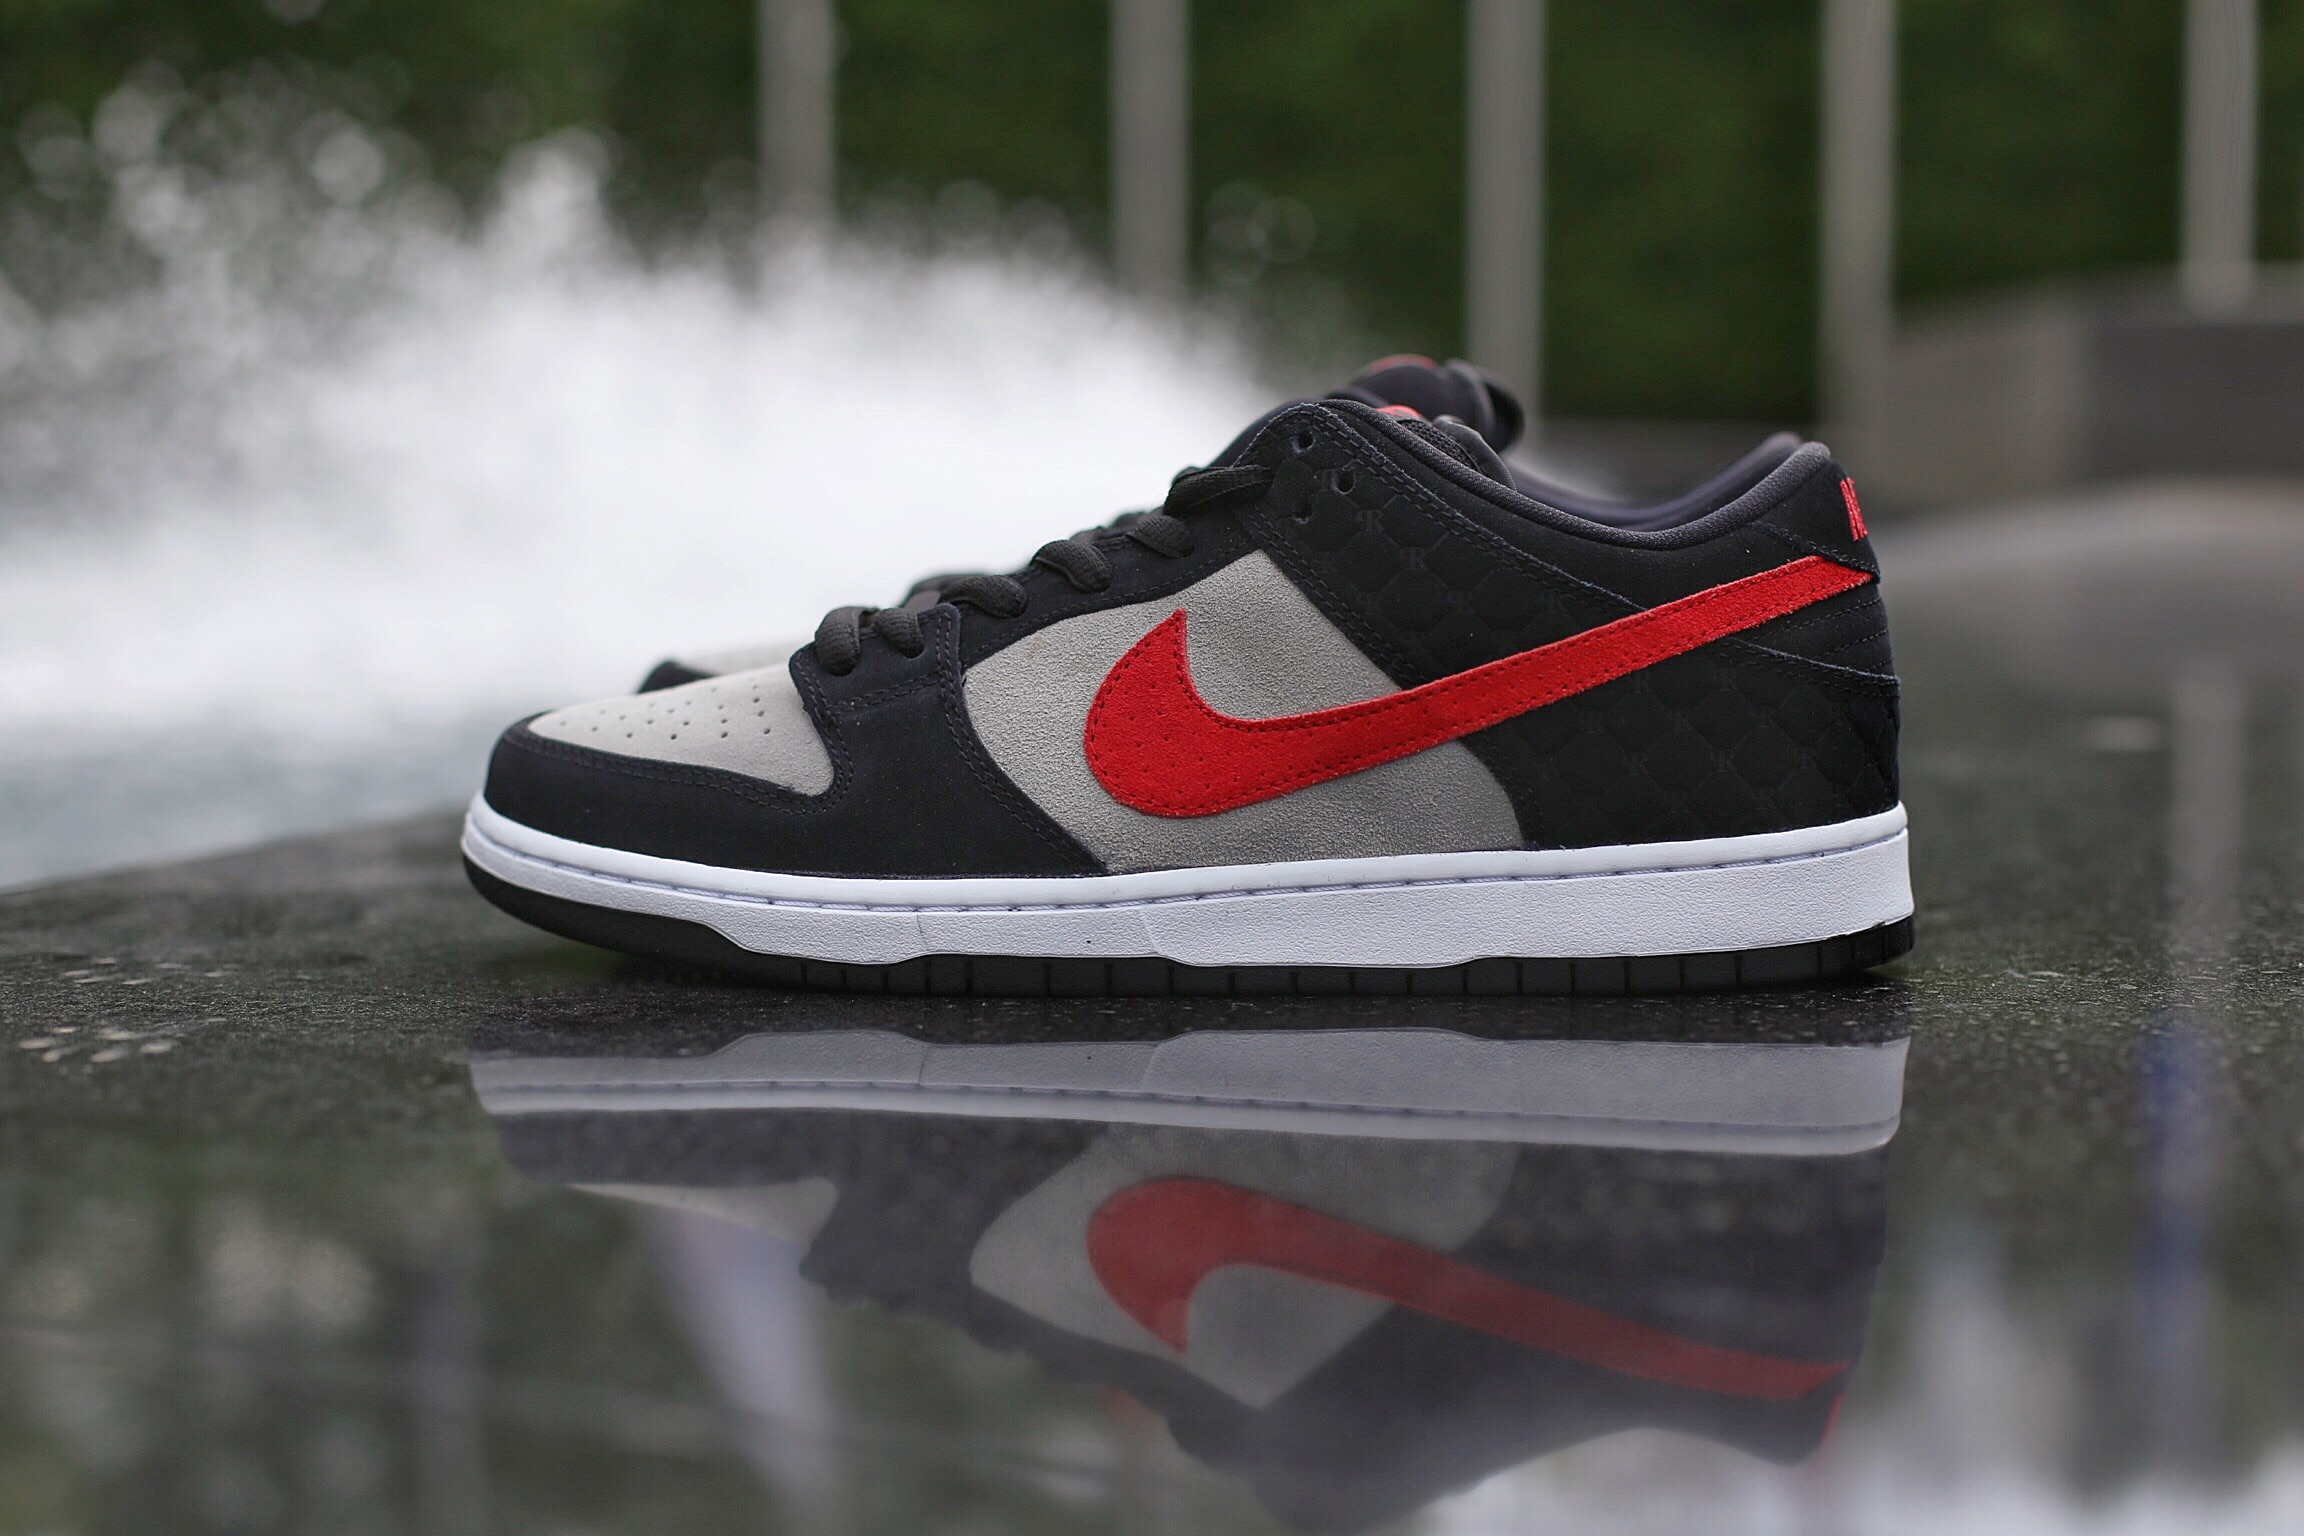 The Primitive Shoes x Nike SB Dunk Low released last saturday, June 20th in limited quantities, with a retail price of $110.